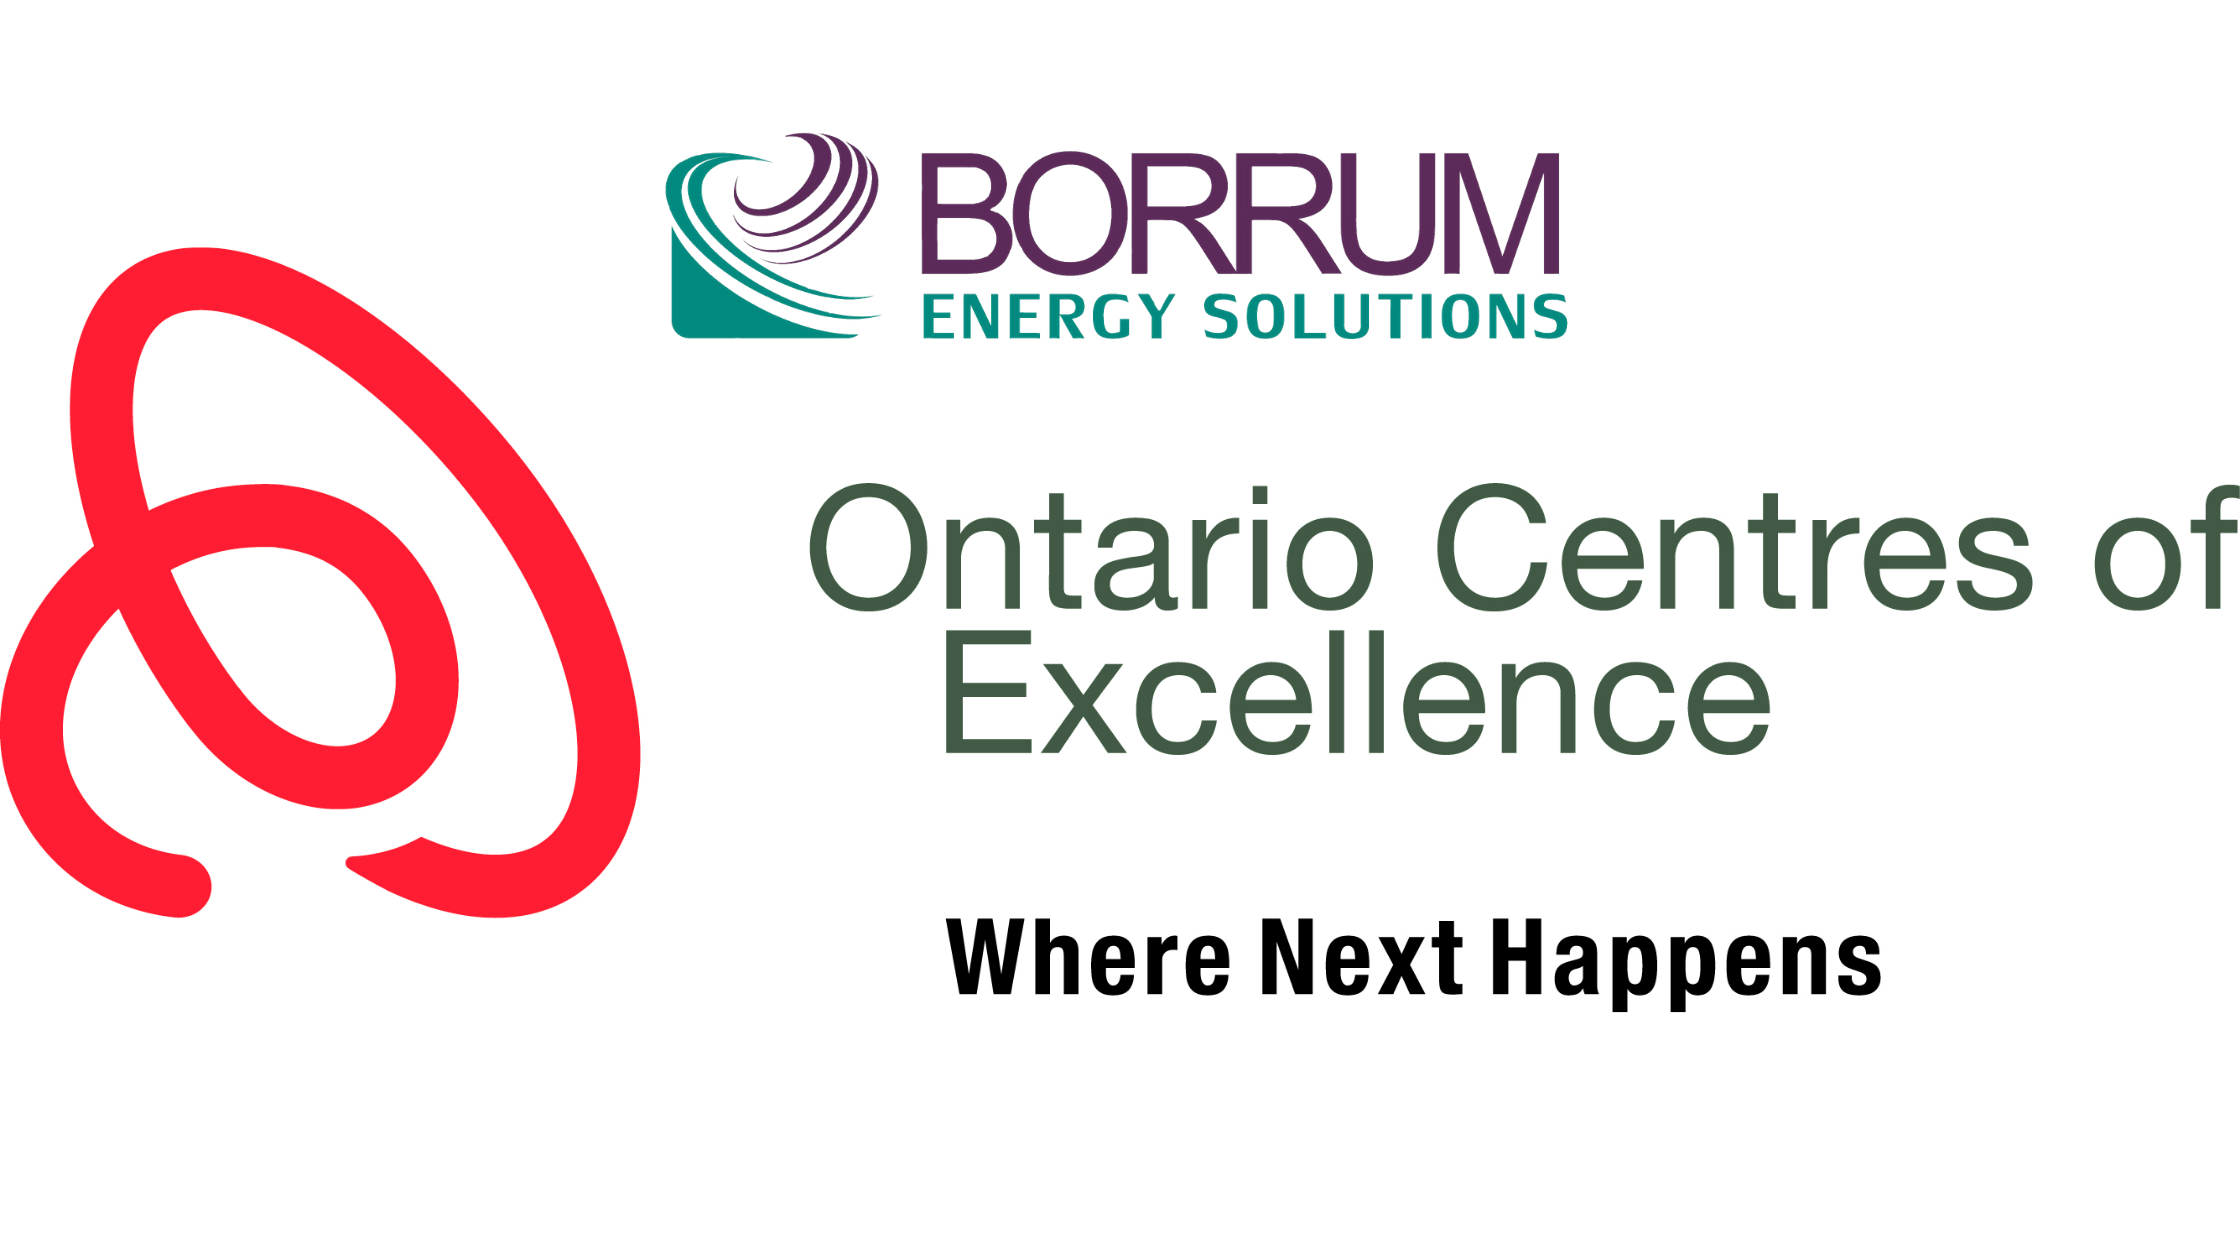 BES to collab with Ontario Center of Excellence - Borrum Energy Solutions